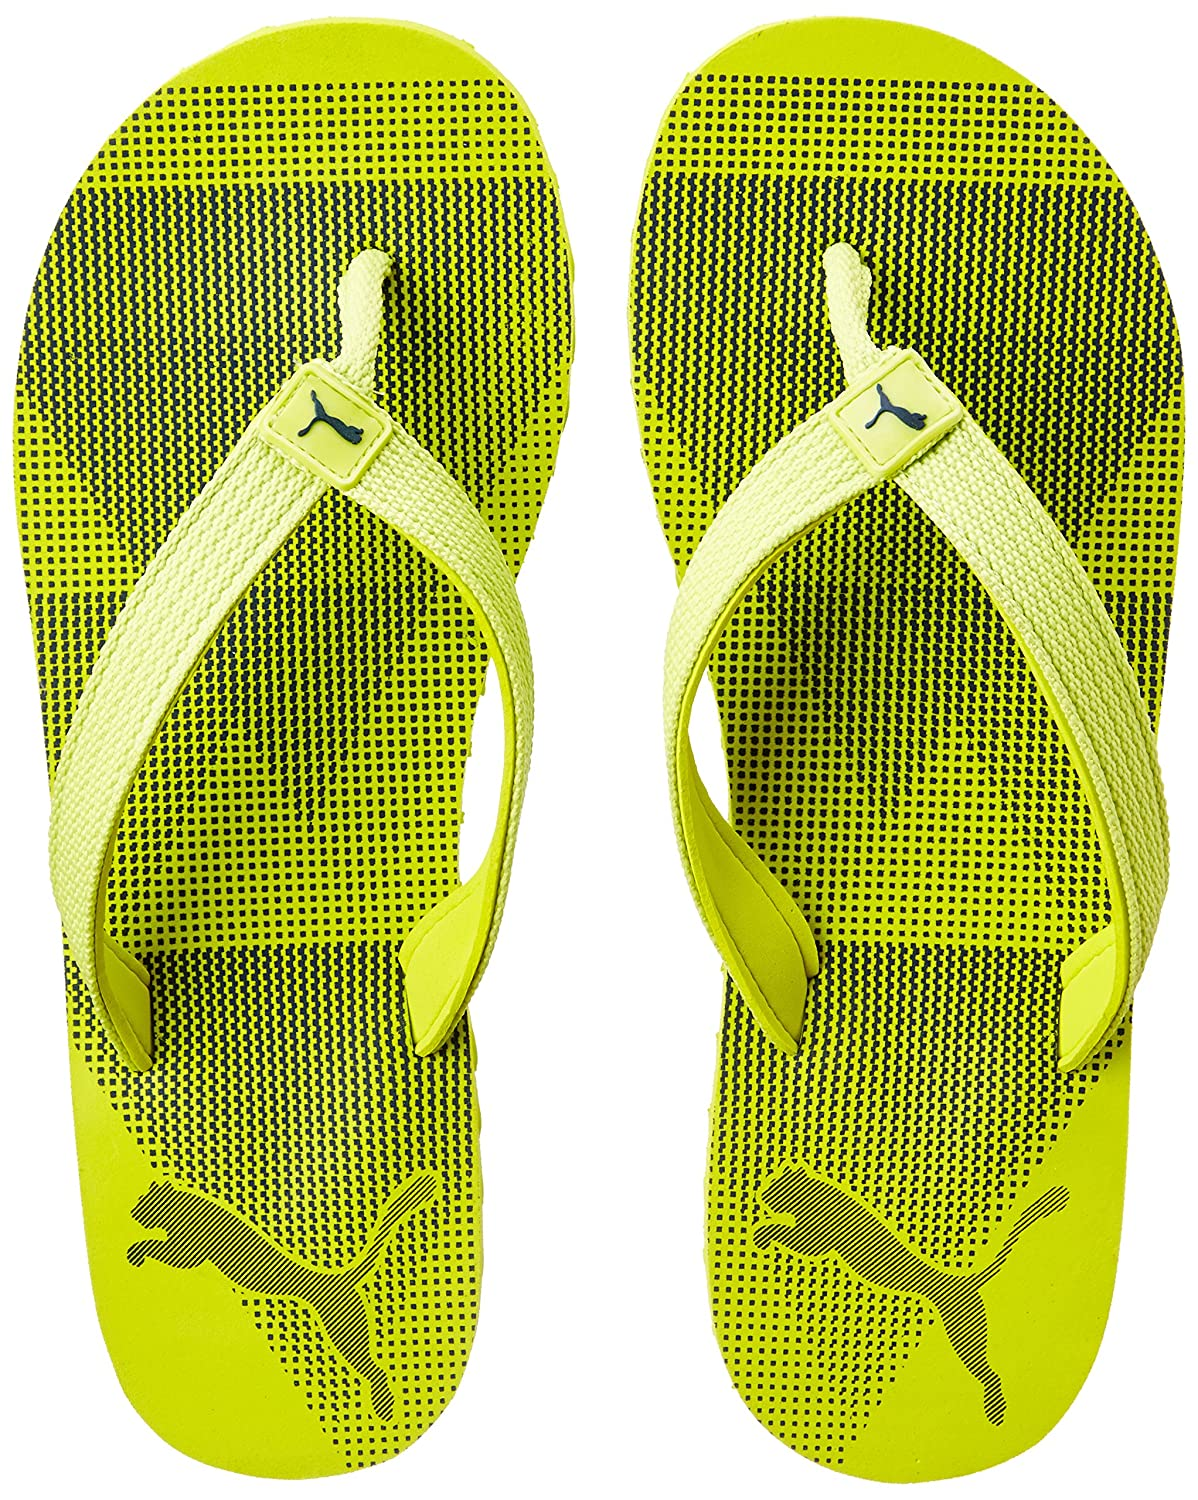 Puma Unisex Insta IDP Nrgy Yellow-Blue Depths Flip Flops Thong Sandals - 7  UK India (40.5 EU) (36637401)  Buy Online at Low Prices in India - Amazon.in 78d872fb0